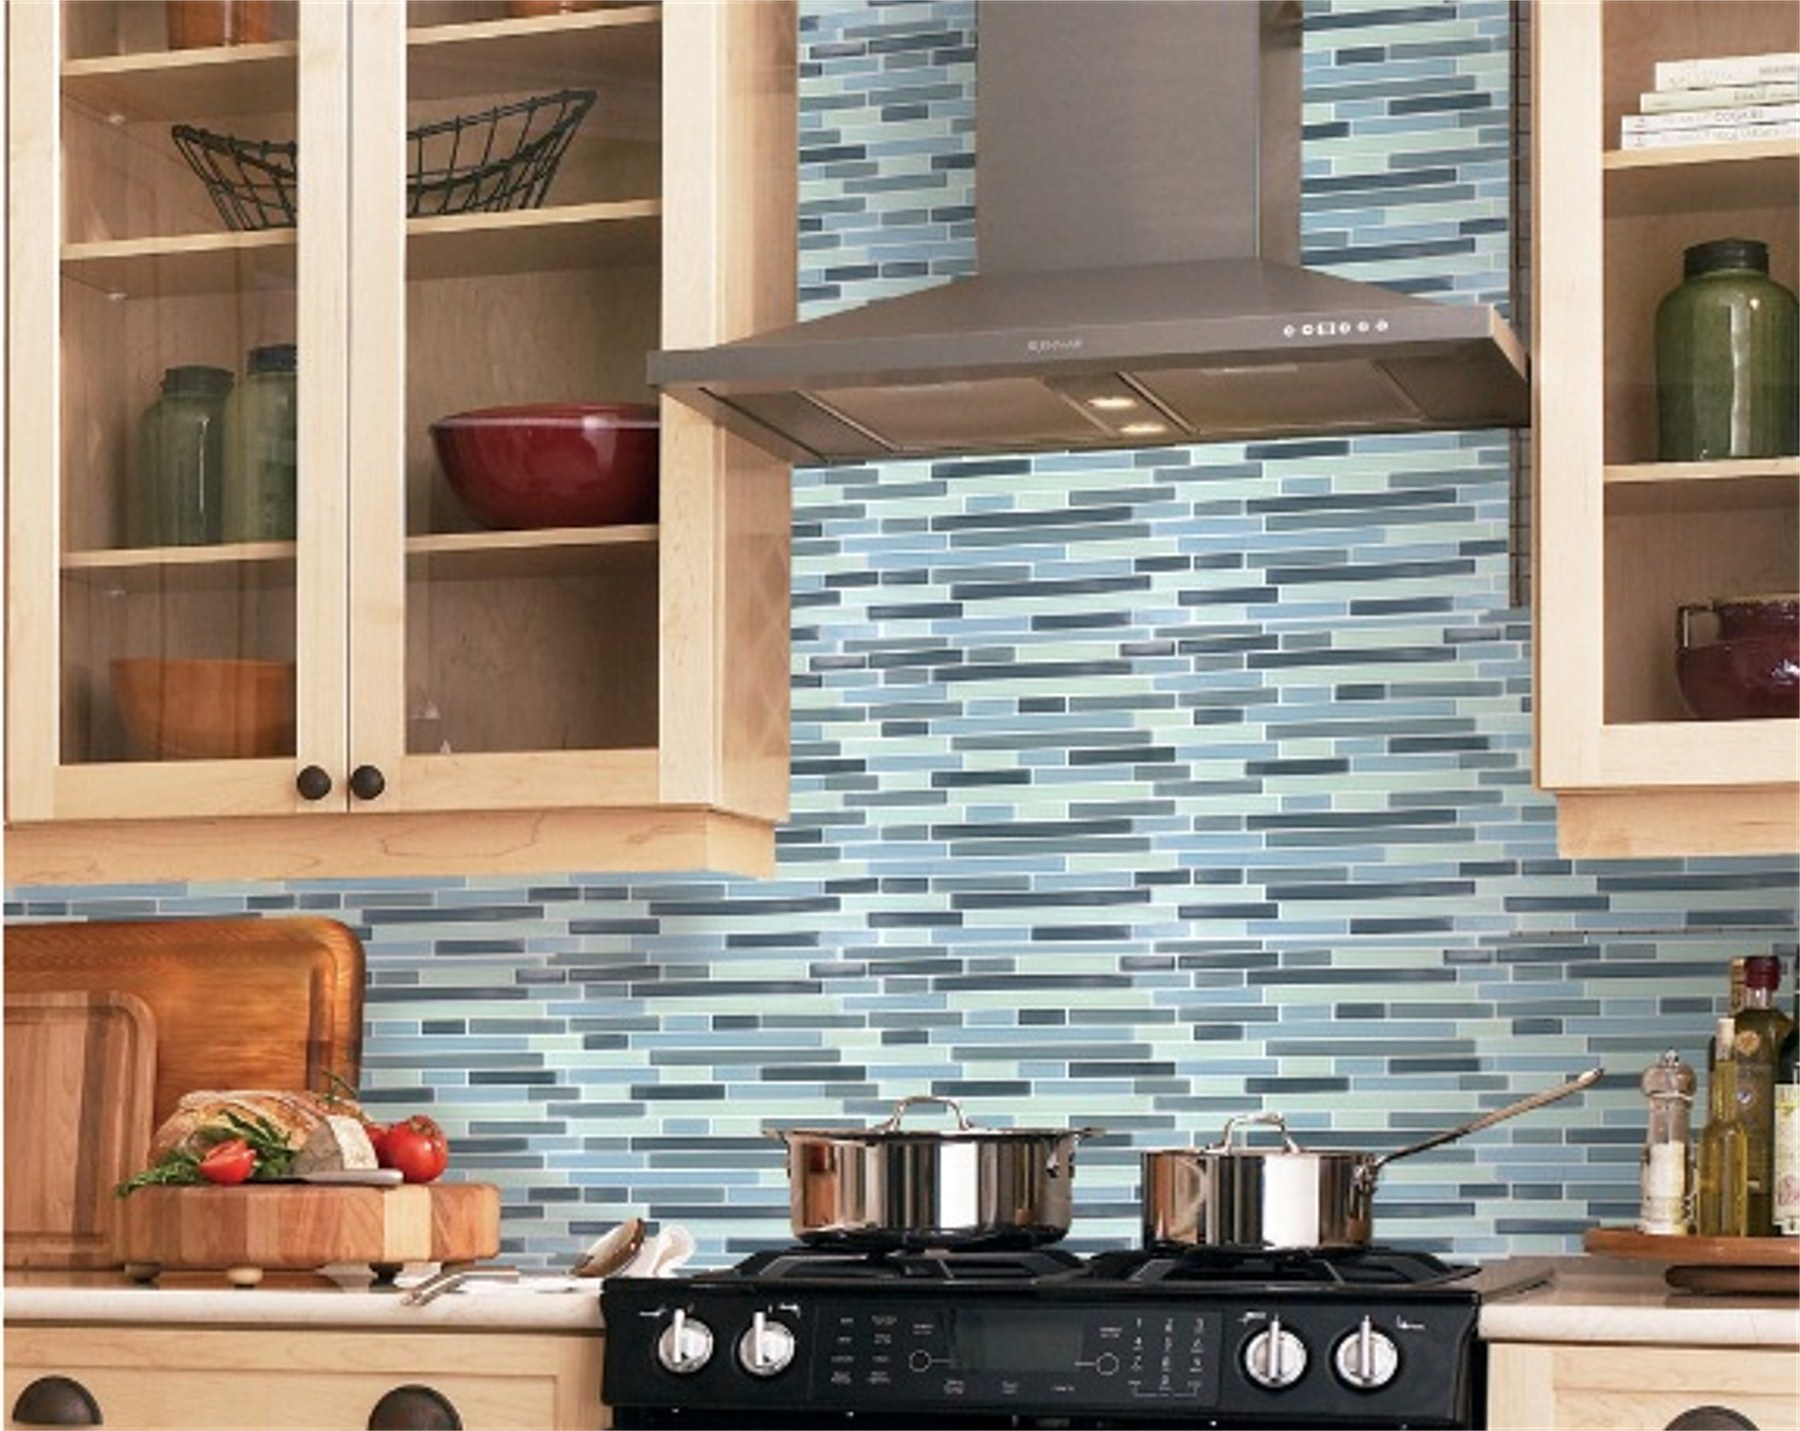 image axd picture 2012 6 rect 4 jpg in the world of natural stone rectangular ti